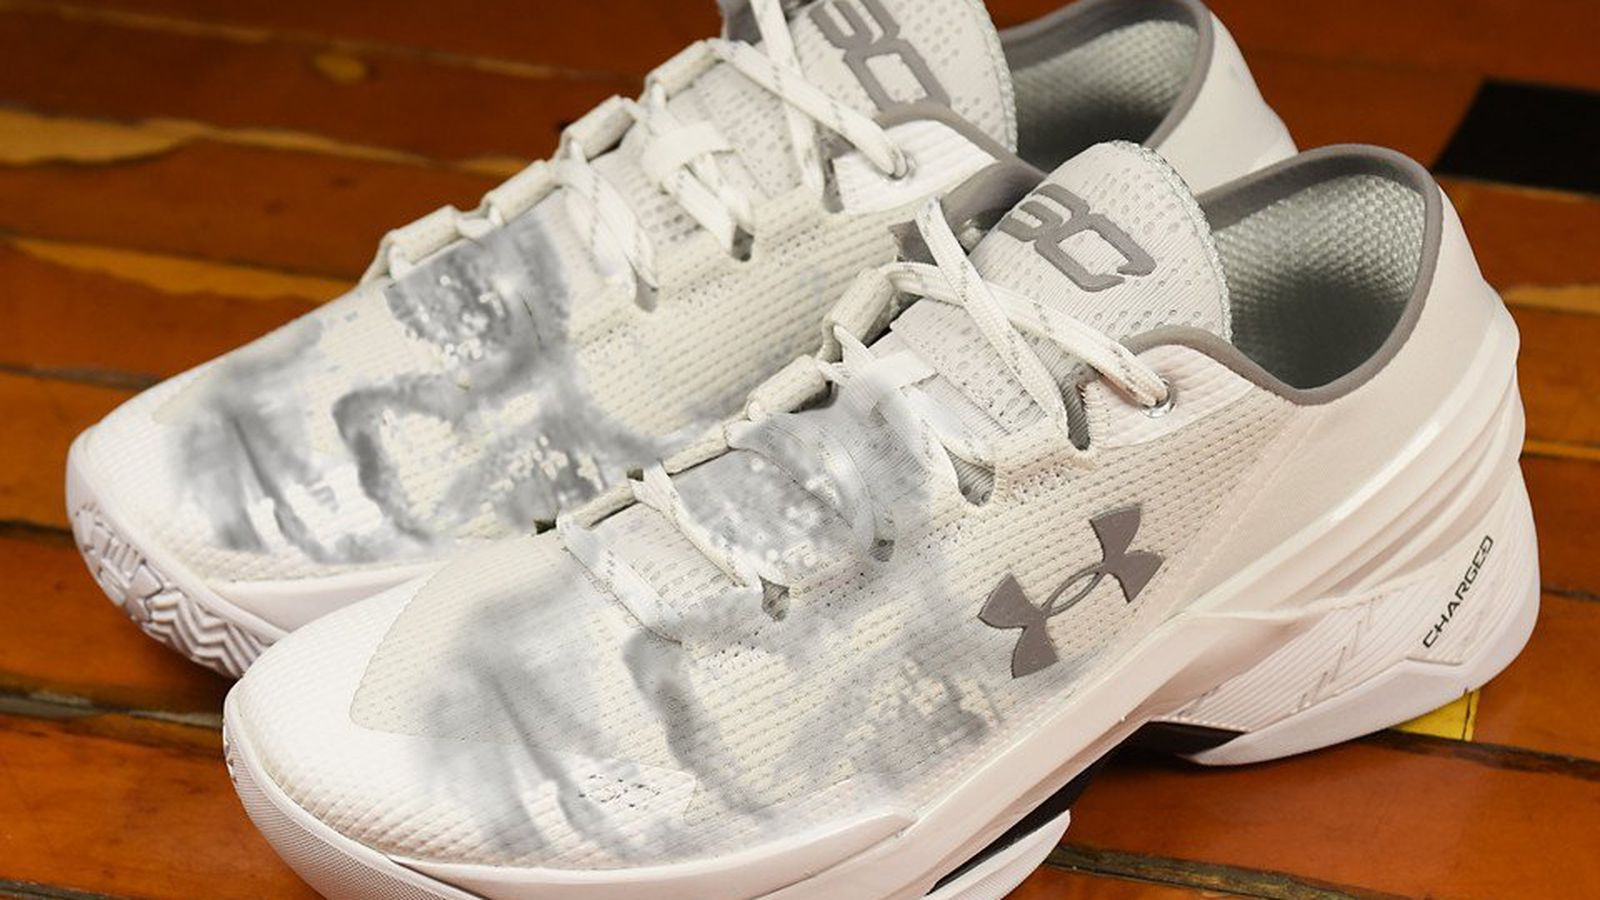 Steph Curry Released Some Ugly Shoes And People Are